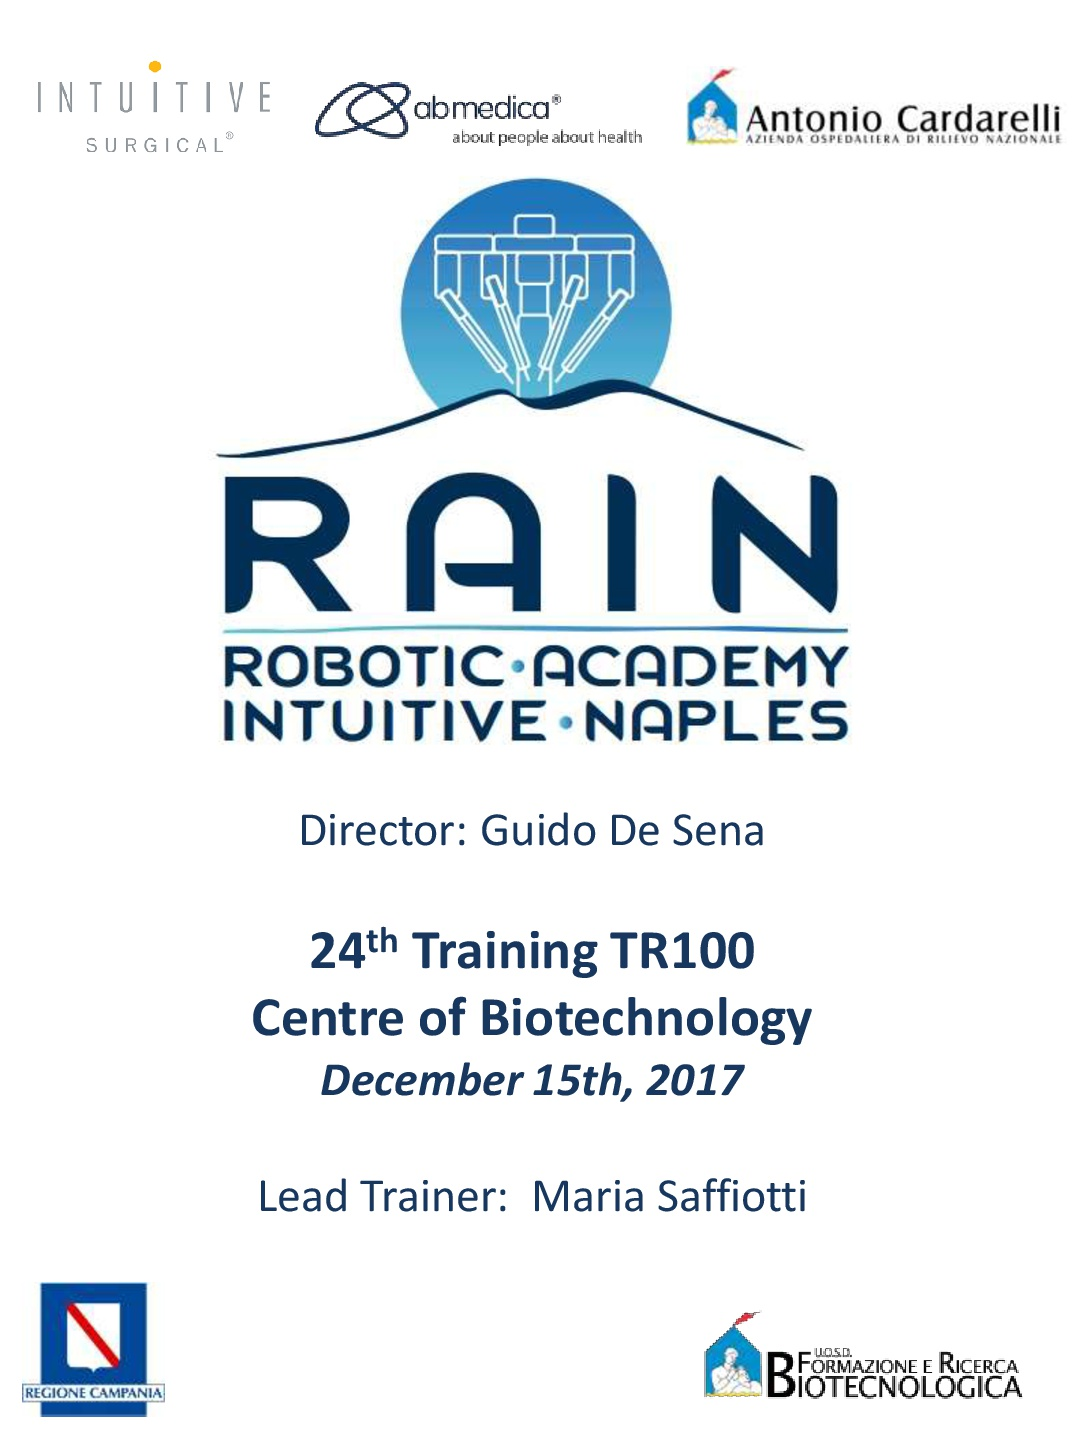 Robotic Academy Intuitive Naples (RAIN) – 24th Training TR100